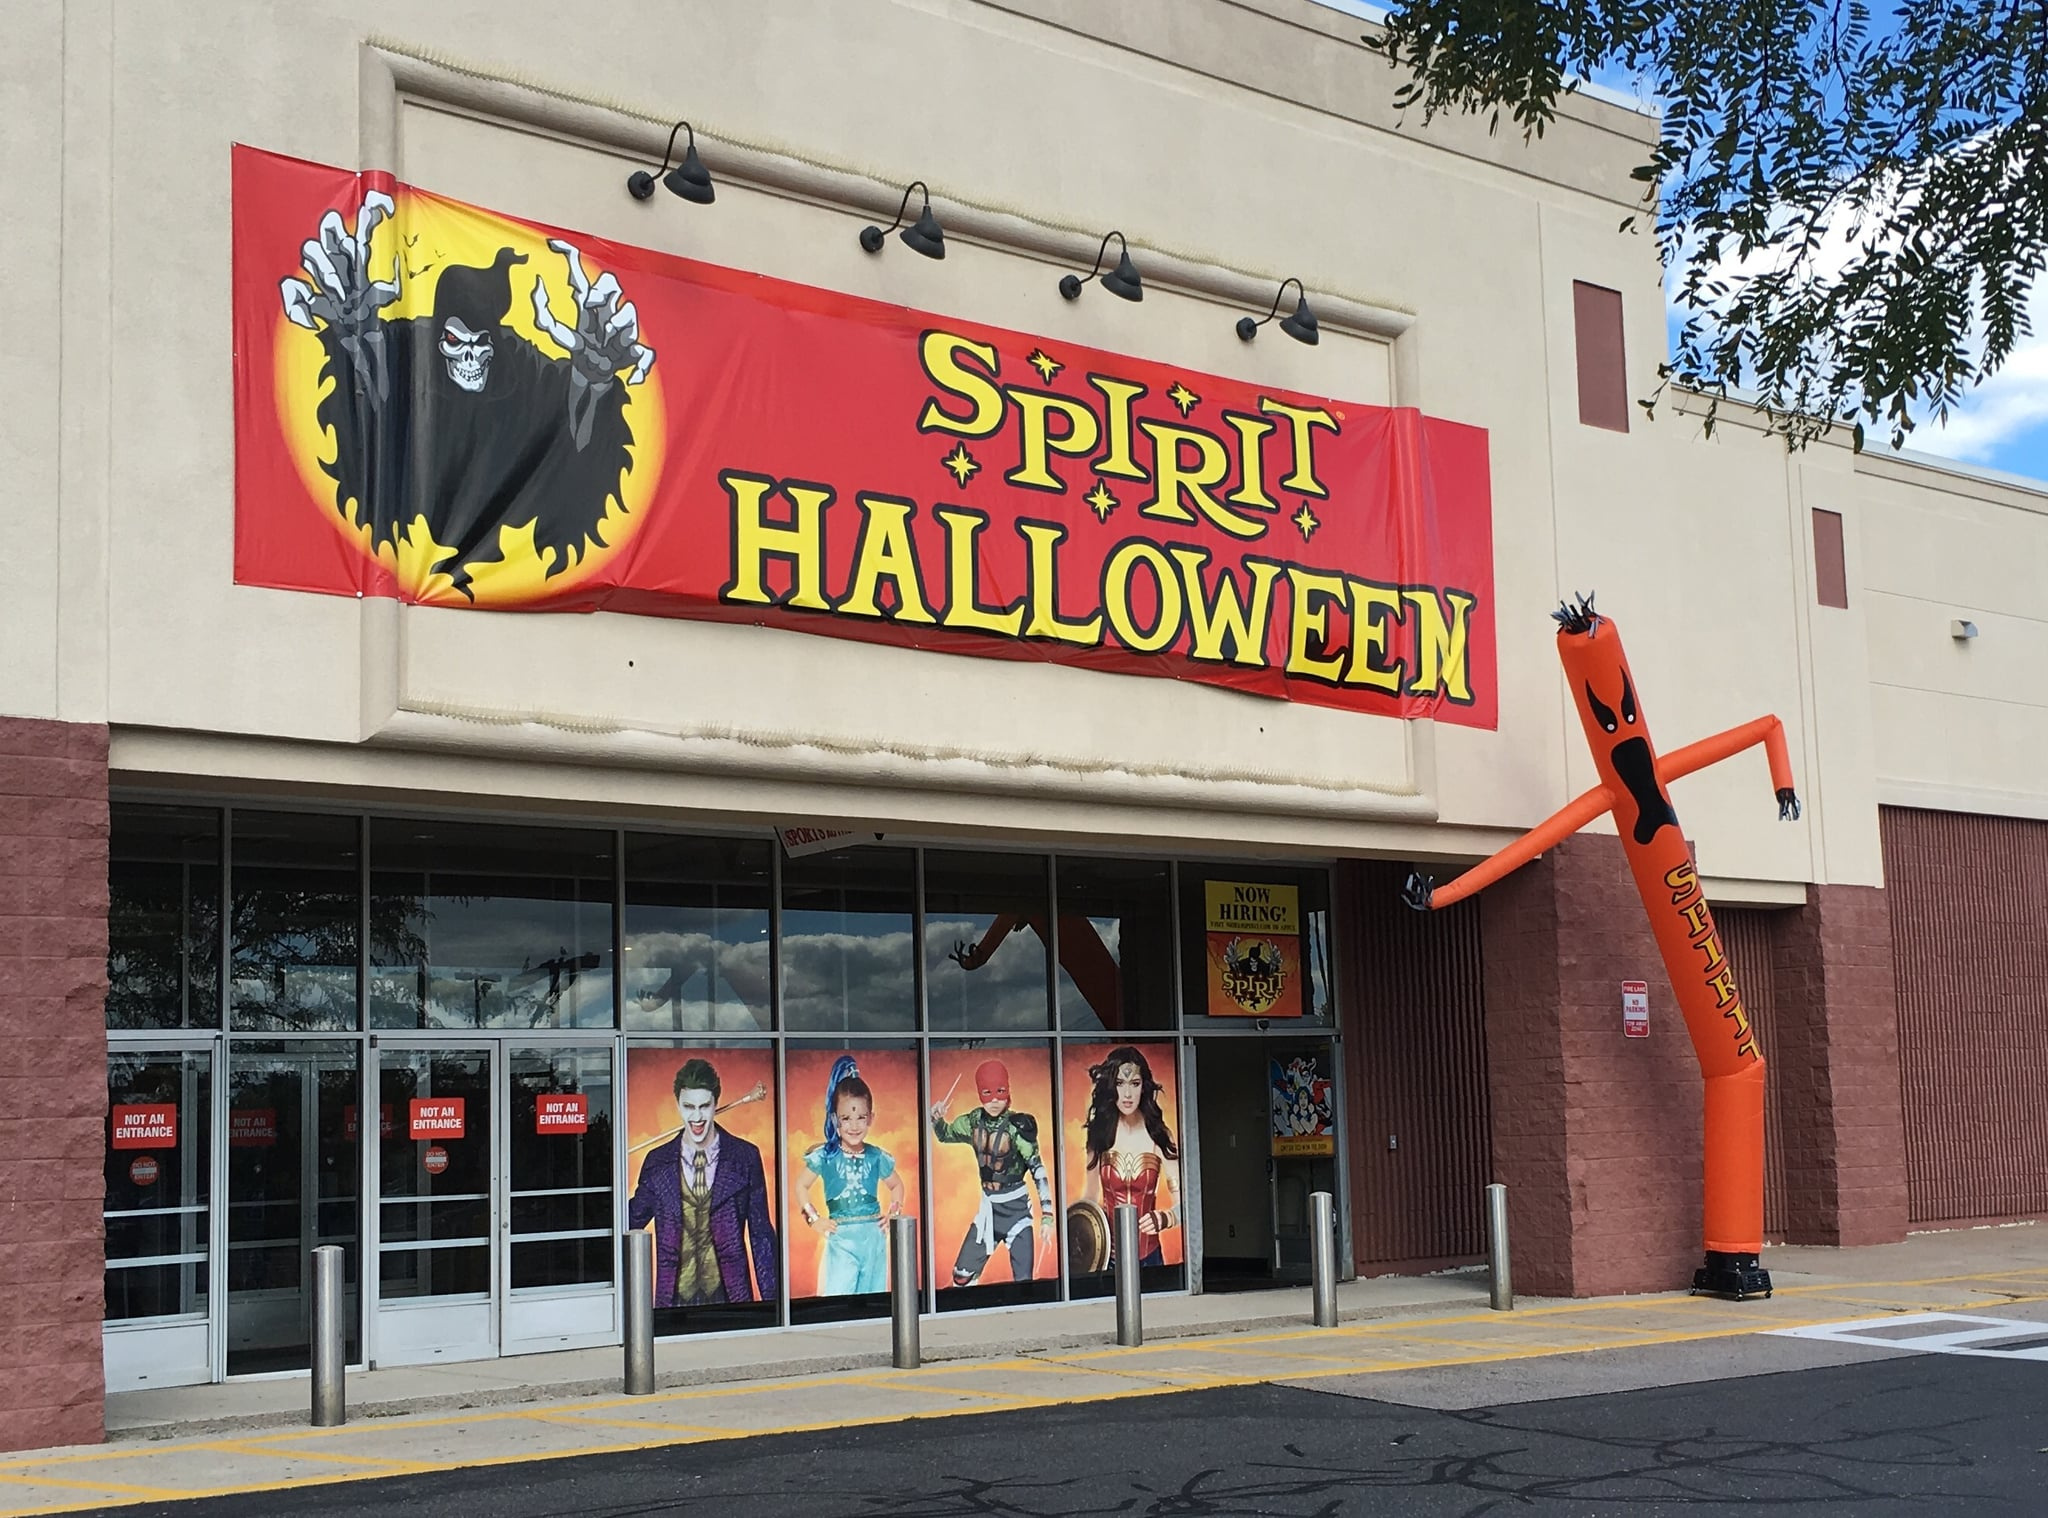 Things You Never Knew About Spirit Halloween